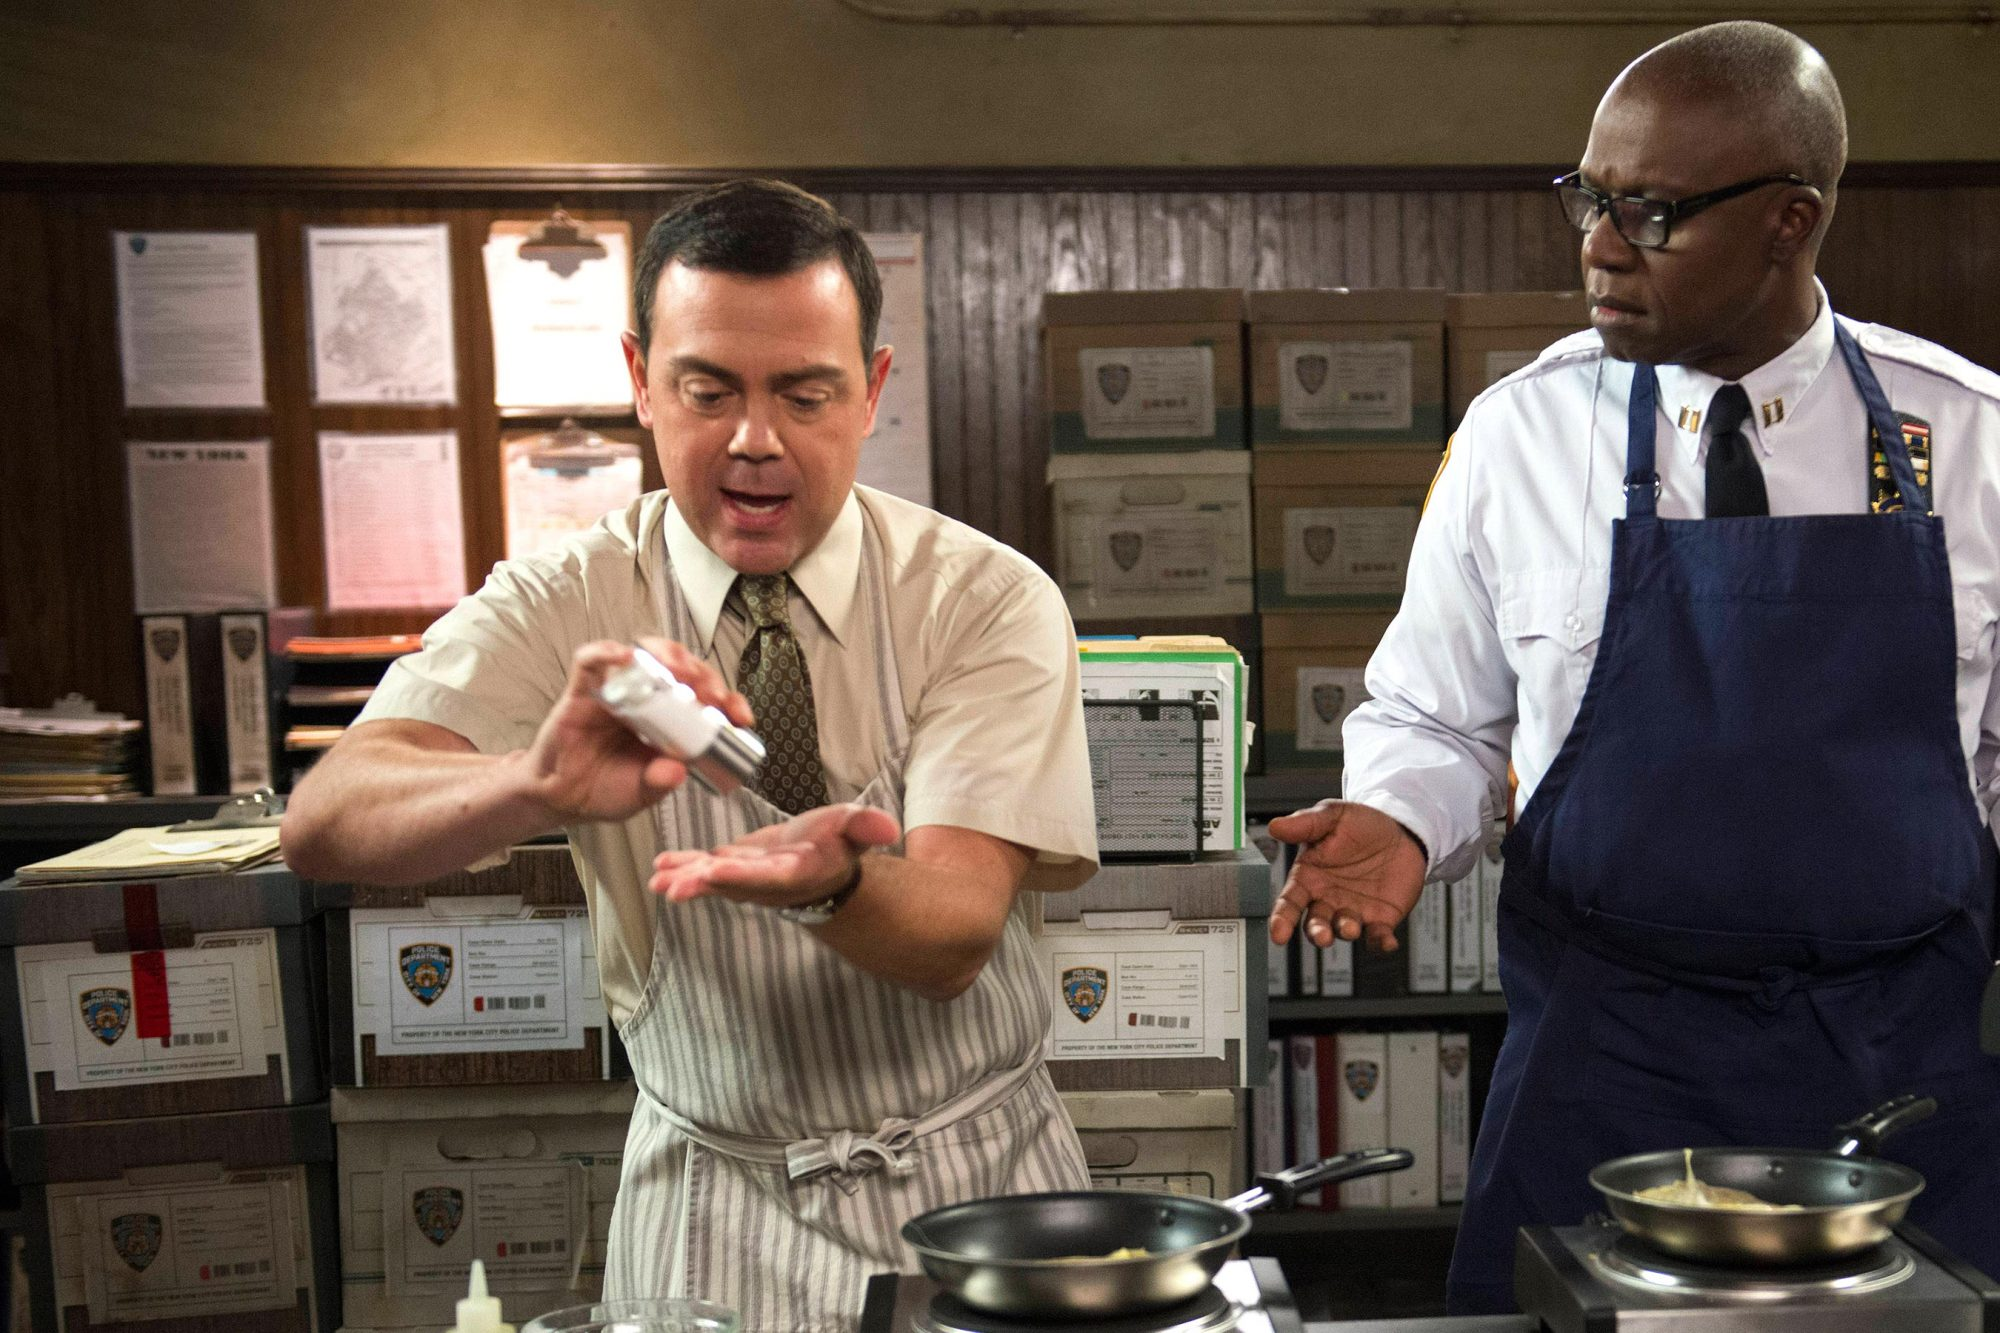 209Brooklyn99-S2-Ep209_SCN20_0416_f_hires2